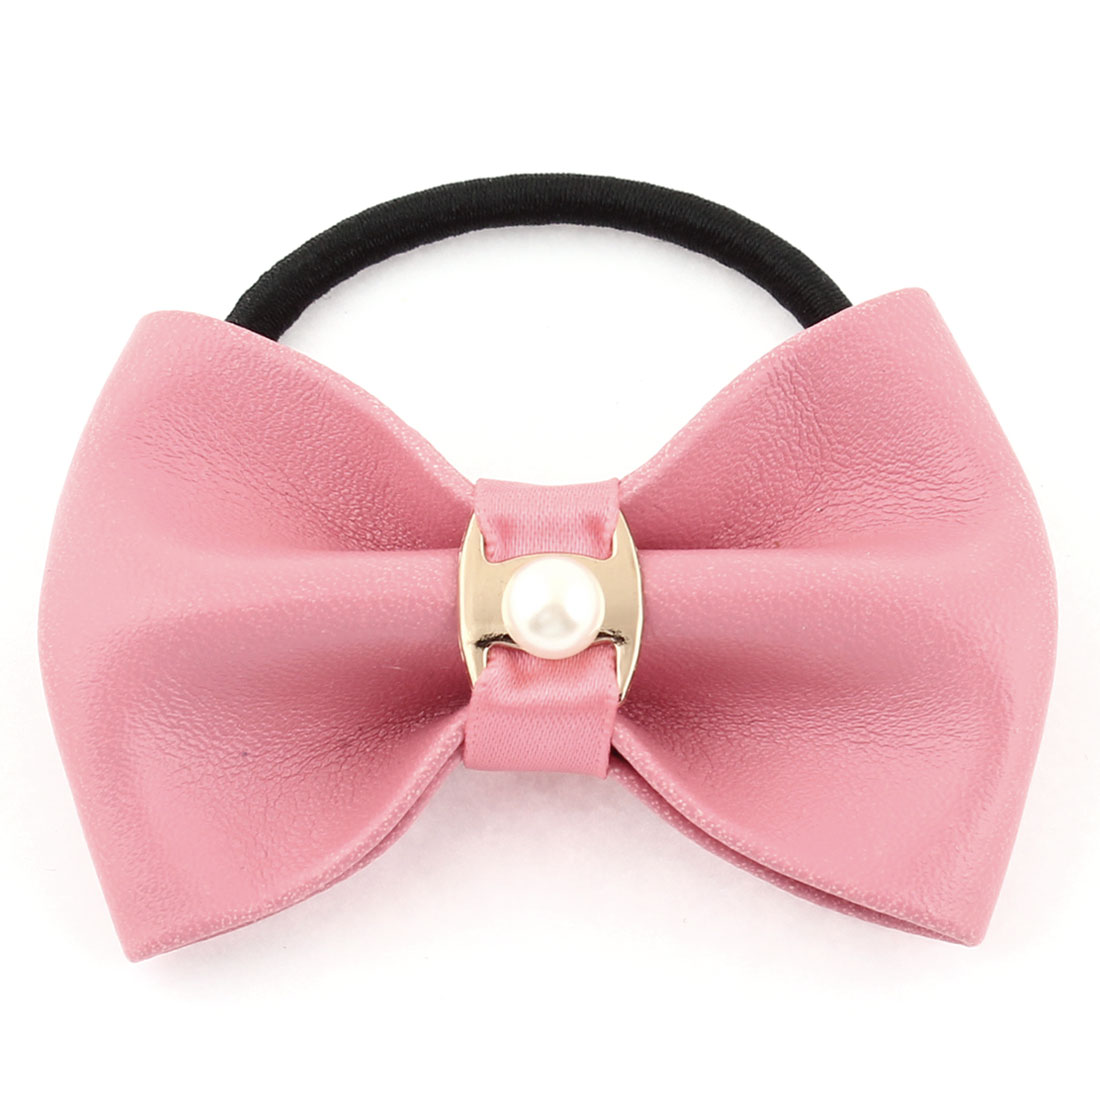 Faux Leather Bowknot Accent Elastic Band Scrunchie Ponytail Holder Pink